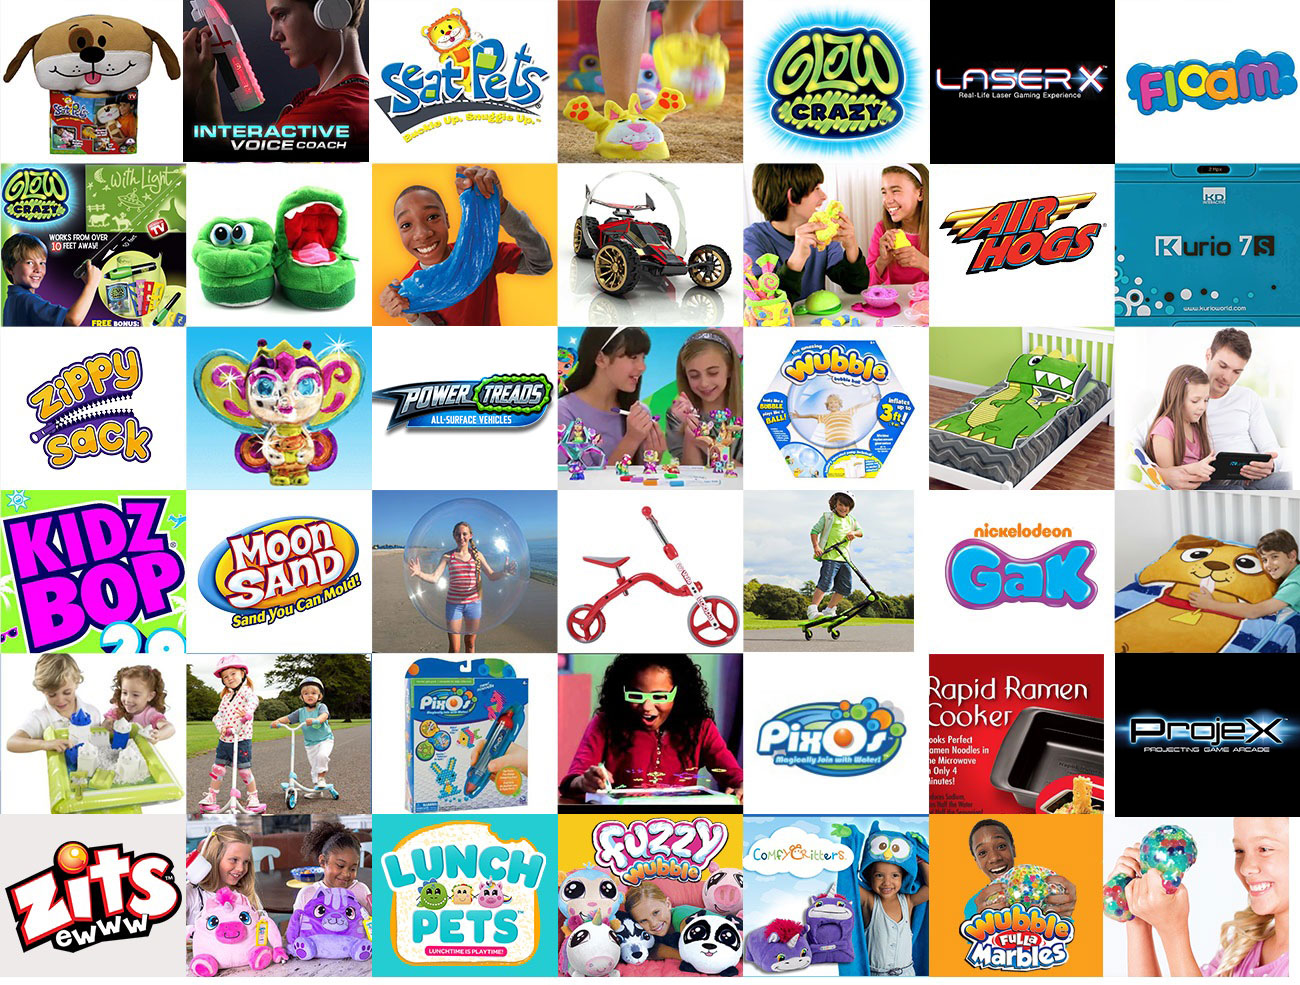 Seatpets, Gak, Seatpets, Stompeez, Glow Crazy, Kidz Bop, Floam, Glow Crazy, Stompeez, Gak, Air Hogs, Floam, Air Hogs, Kurio Tablet, Zippysack, Sparkleez, Moon Sand, Sparkleez, Wubble, Zippysack, Kurio, Kidz Bop, Moon Sand, Wubble, Yvolution, Y Fliker, Gak, Zippysack, Moon Sand, Y Fliker, Pixos, 3D Magic, Pixos, Rapid Ramen, Floam